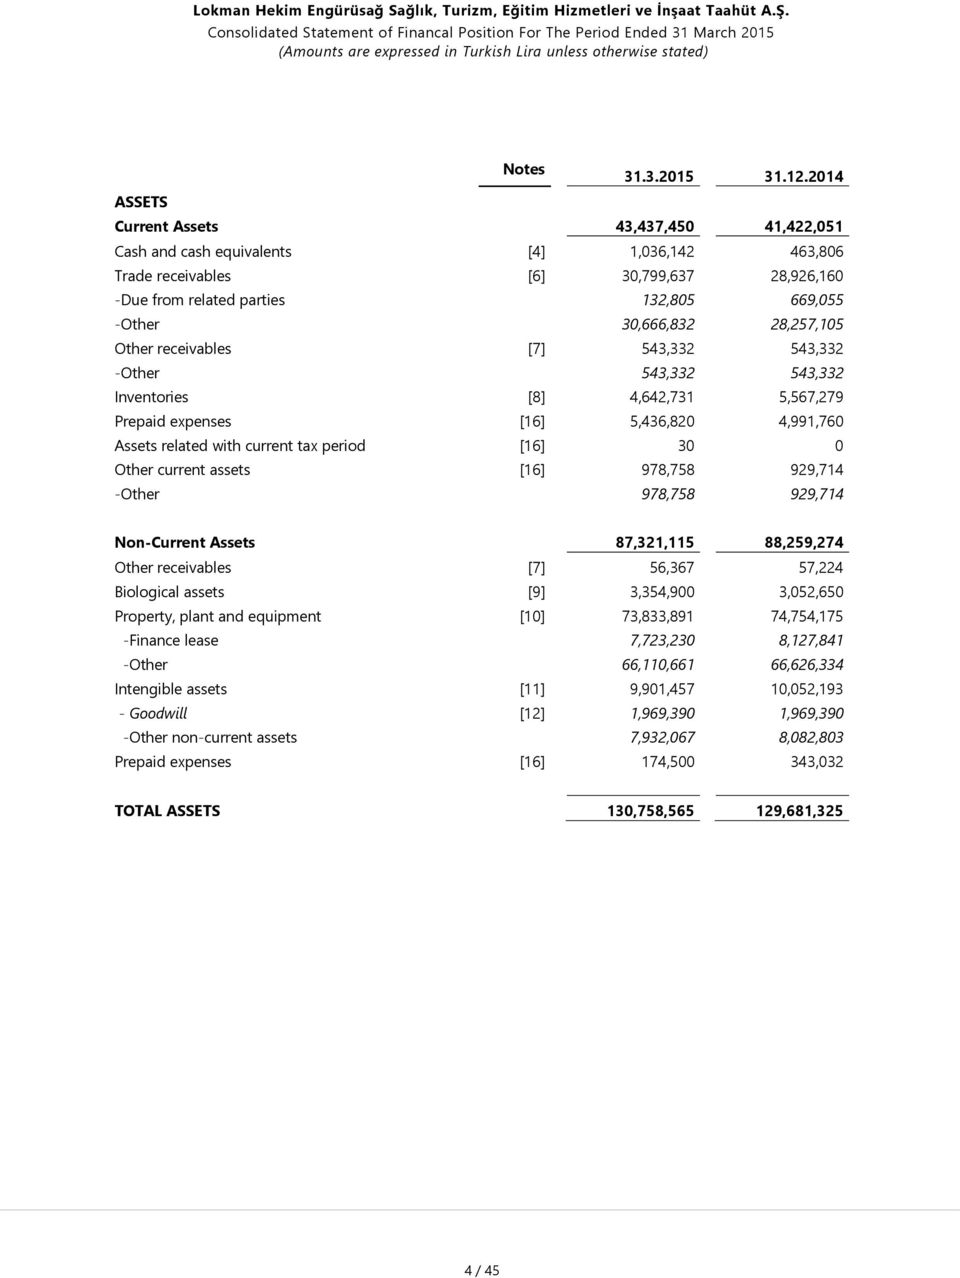 30,666,832 28,257,105 Other receivables [7] 543,332 543,332 -Other 543,332 543,332 Inventories [8] 4,642,731 5,567,279 Prepaid expenses [16] 5,436,820 4,991,760 Assets related with current tax period